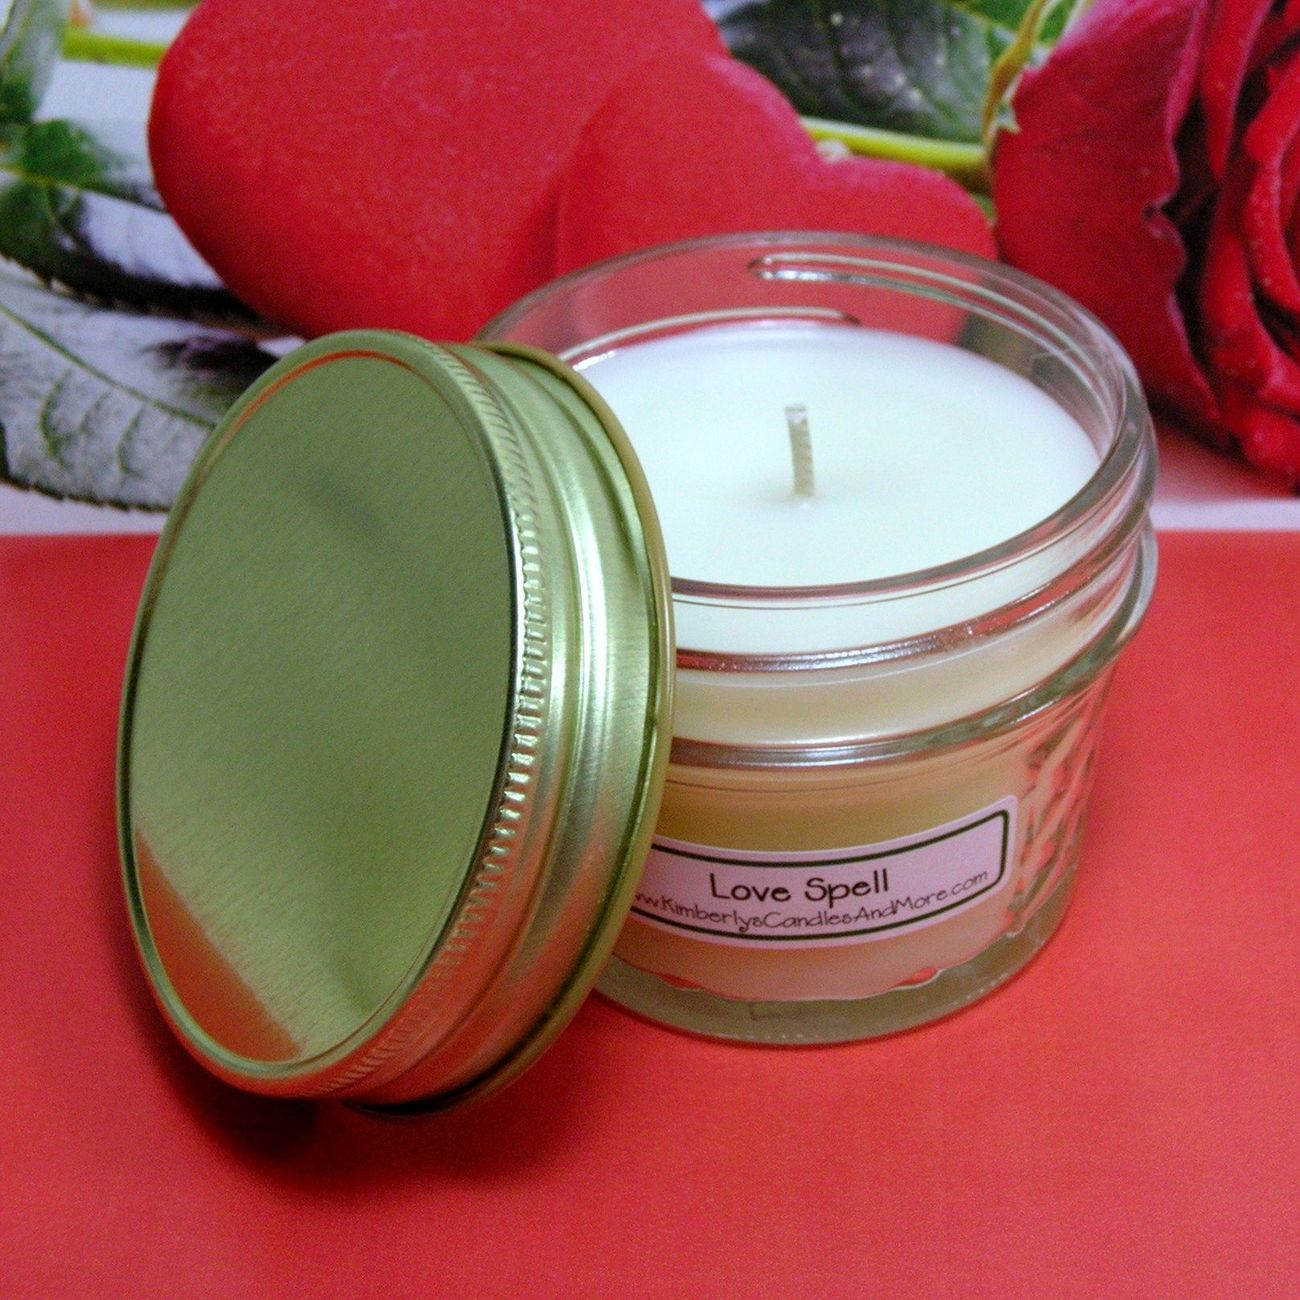 Lovespell (Type) PURE SOY 4 oz. Soy Jelly Jar Candle